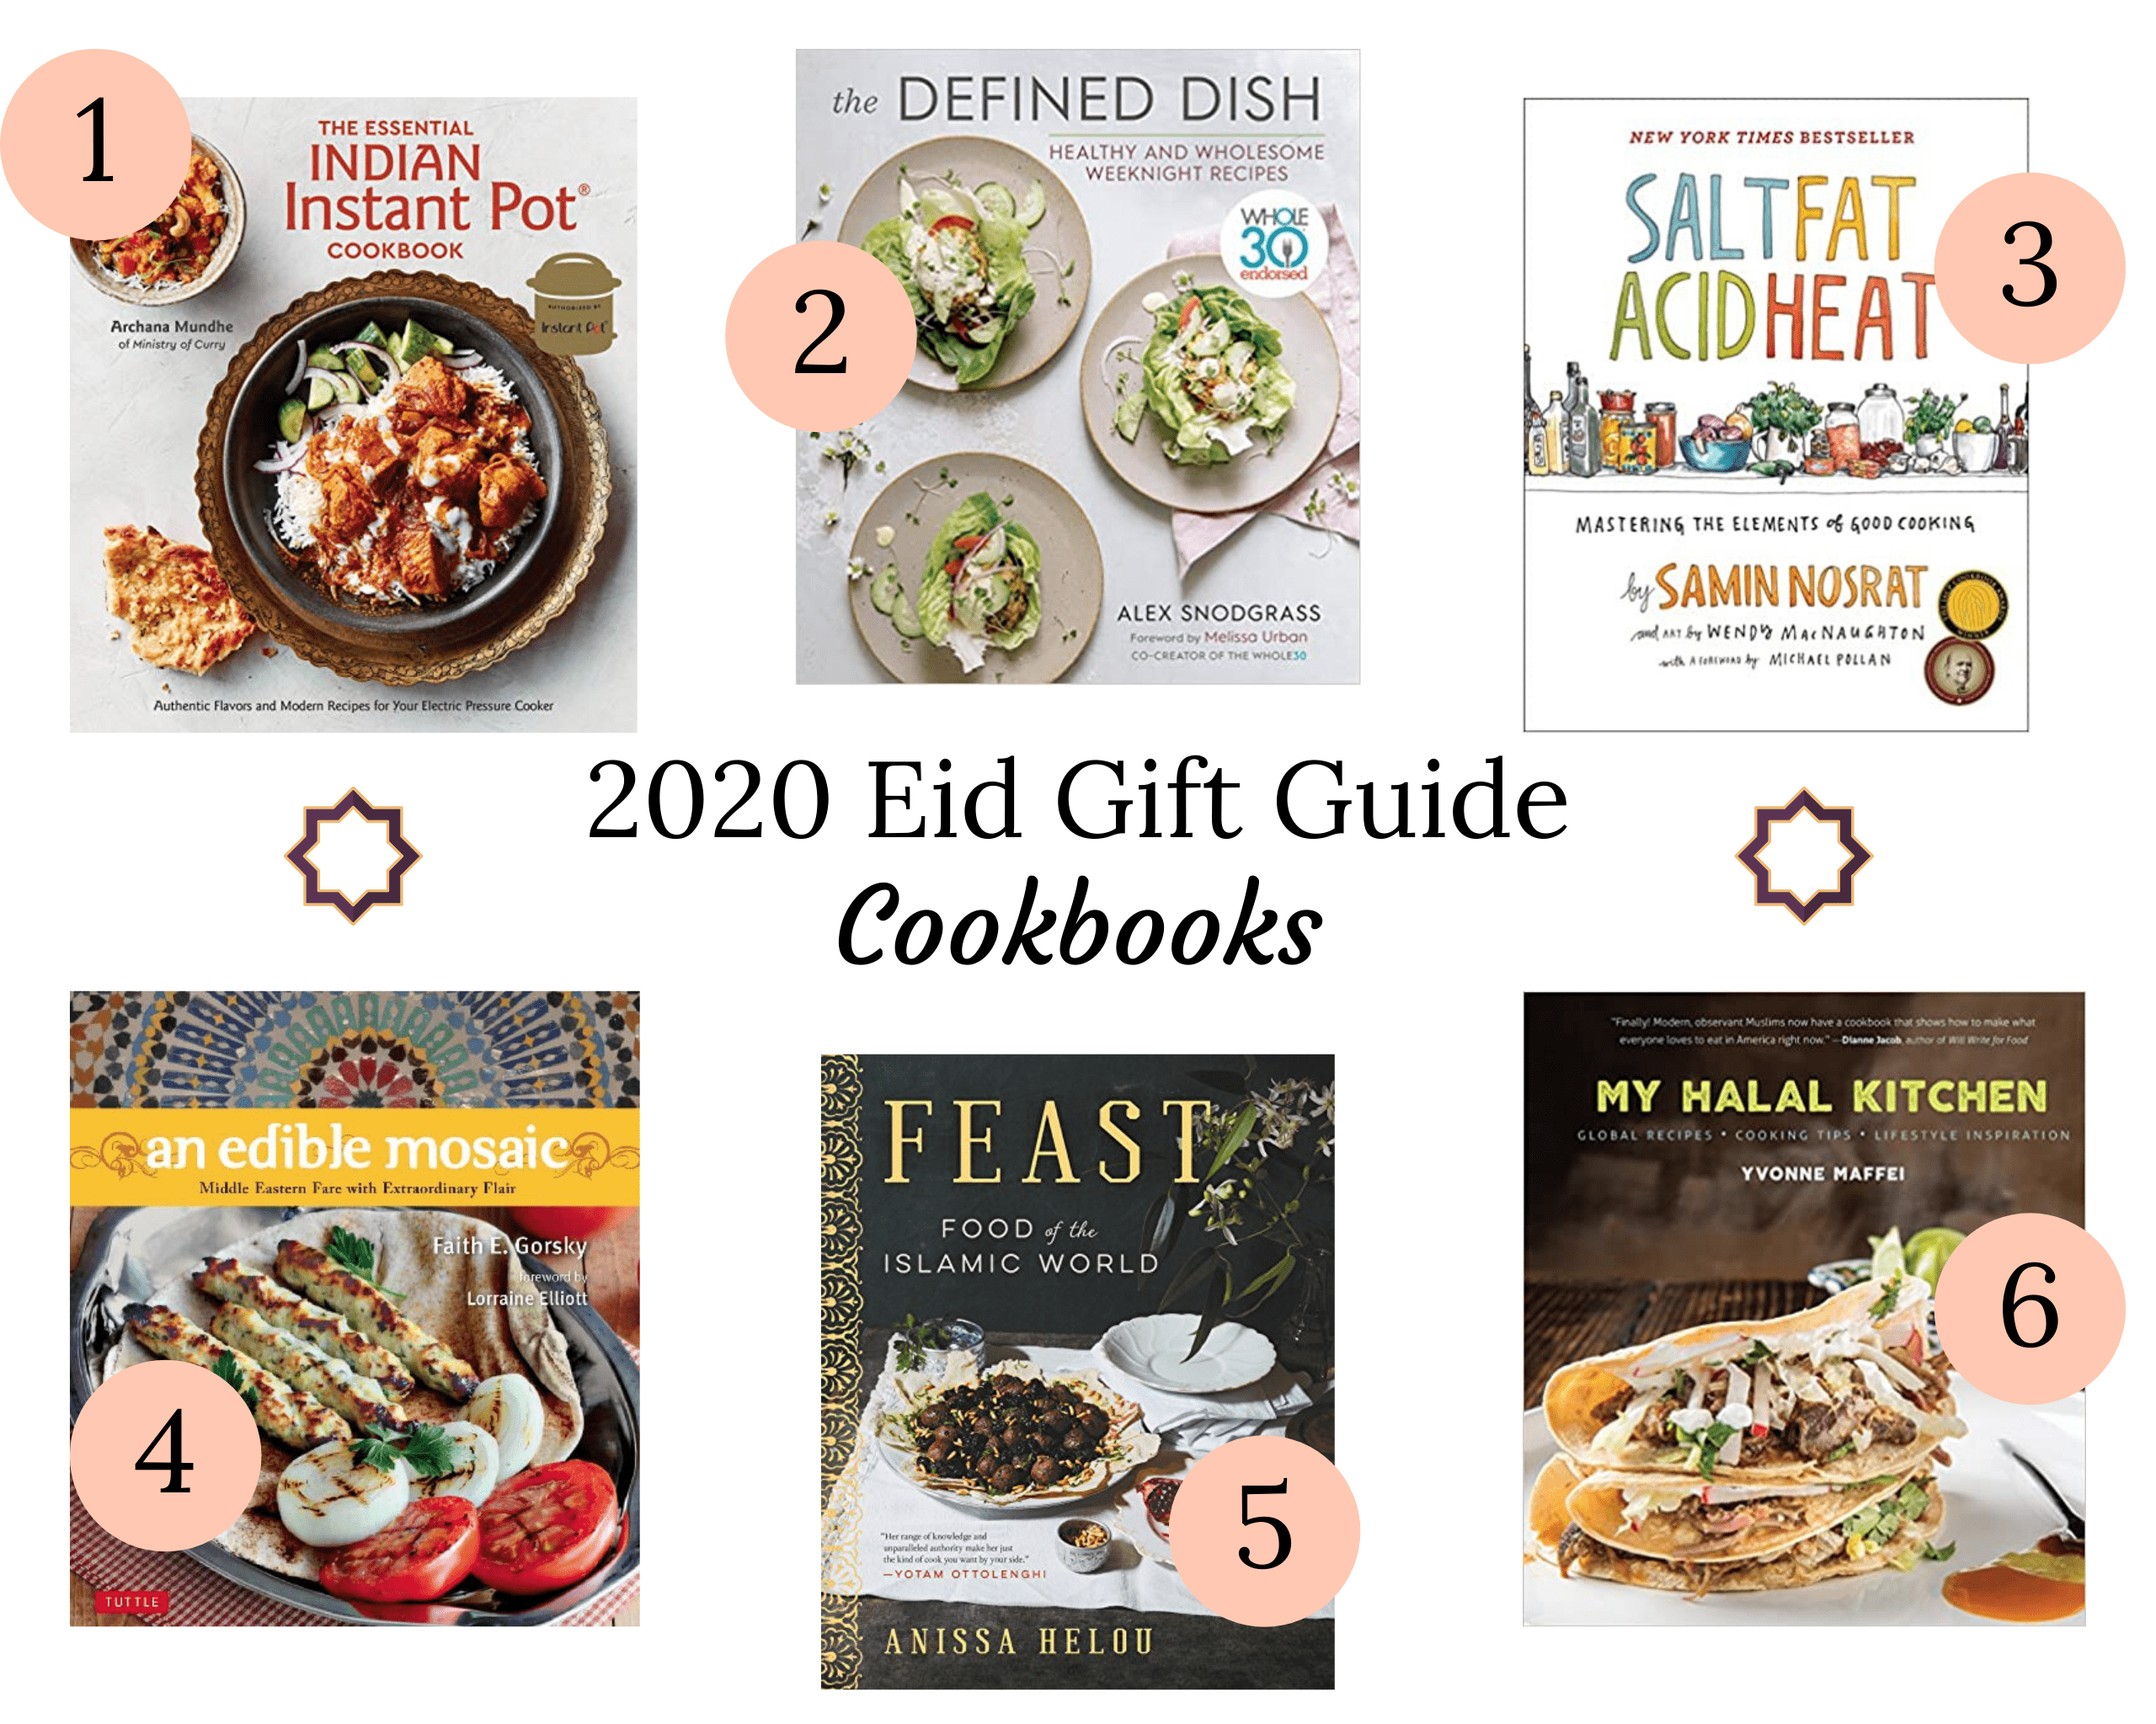 Eid Gift Guide Cookbooks in a collage